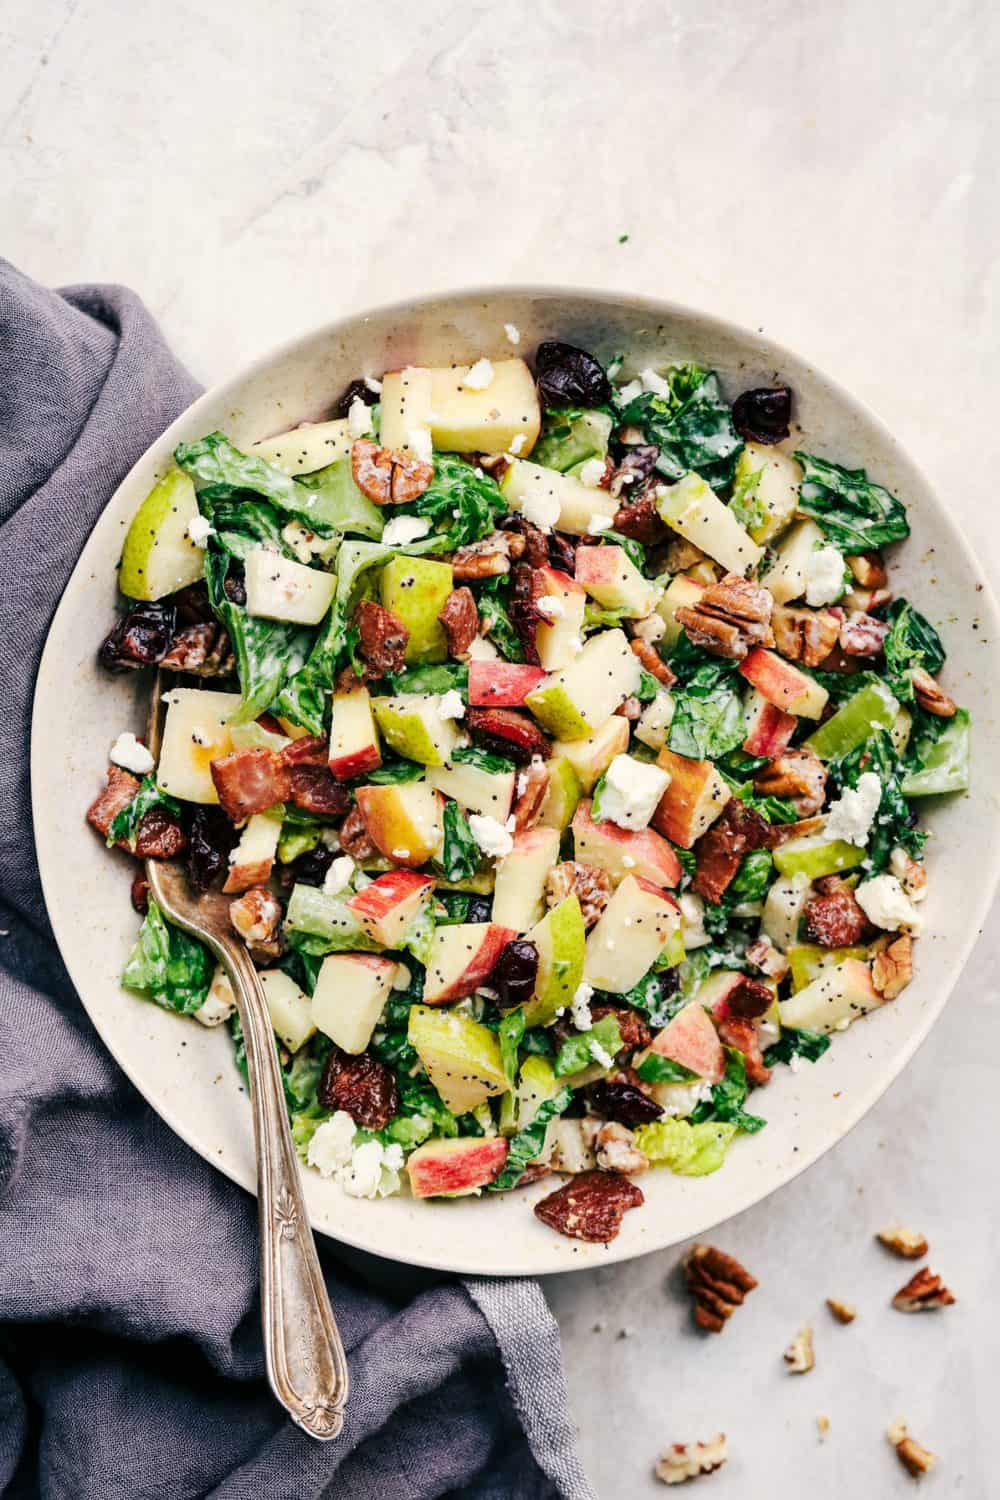 Autumn Chopped Salad with Creamy Poppyseed Dressing 3